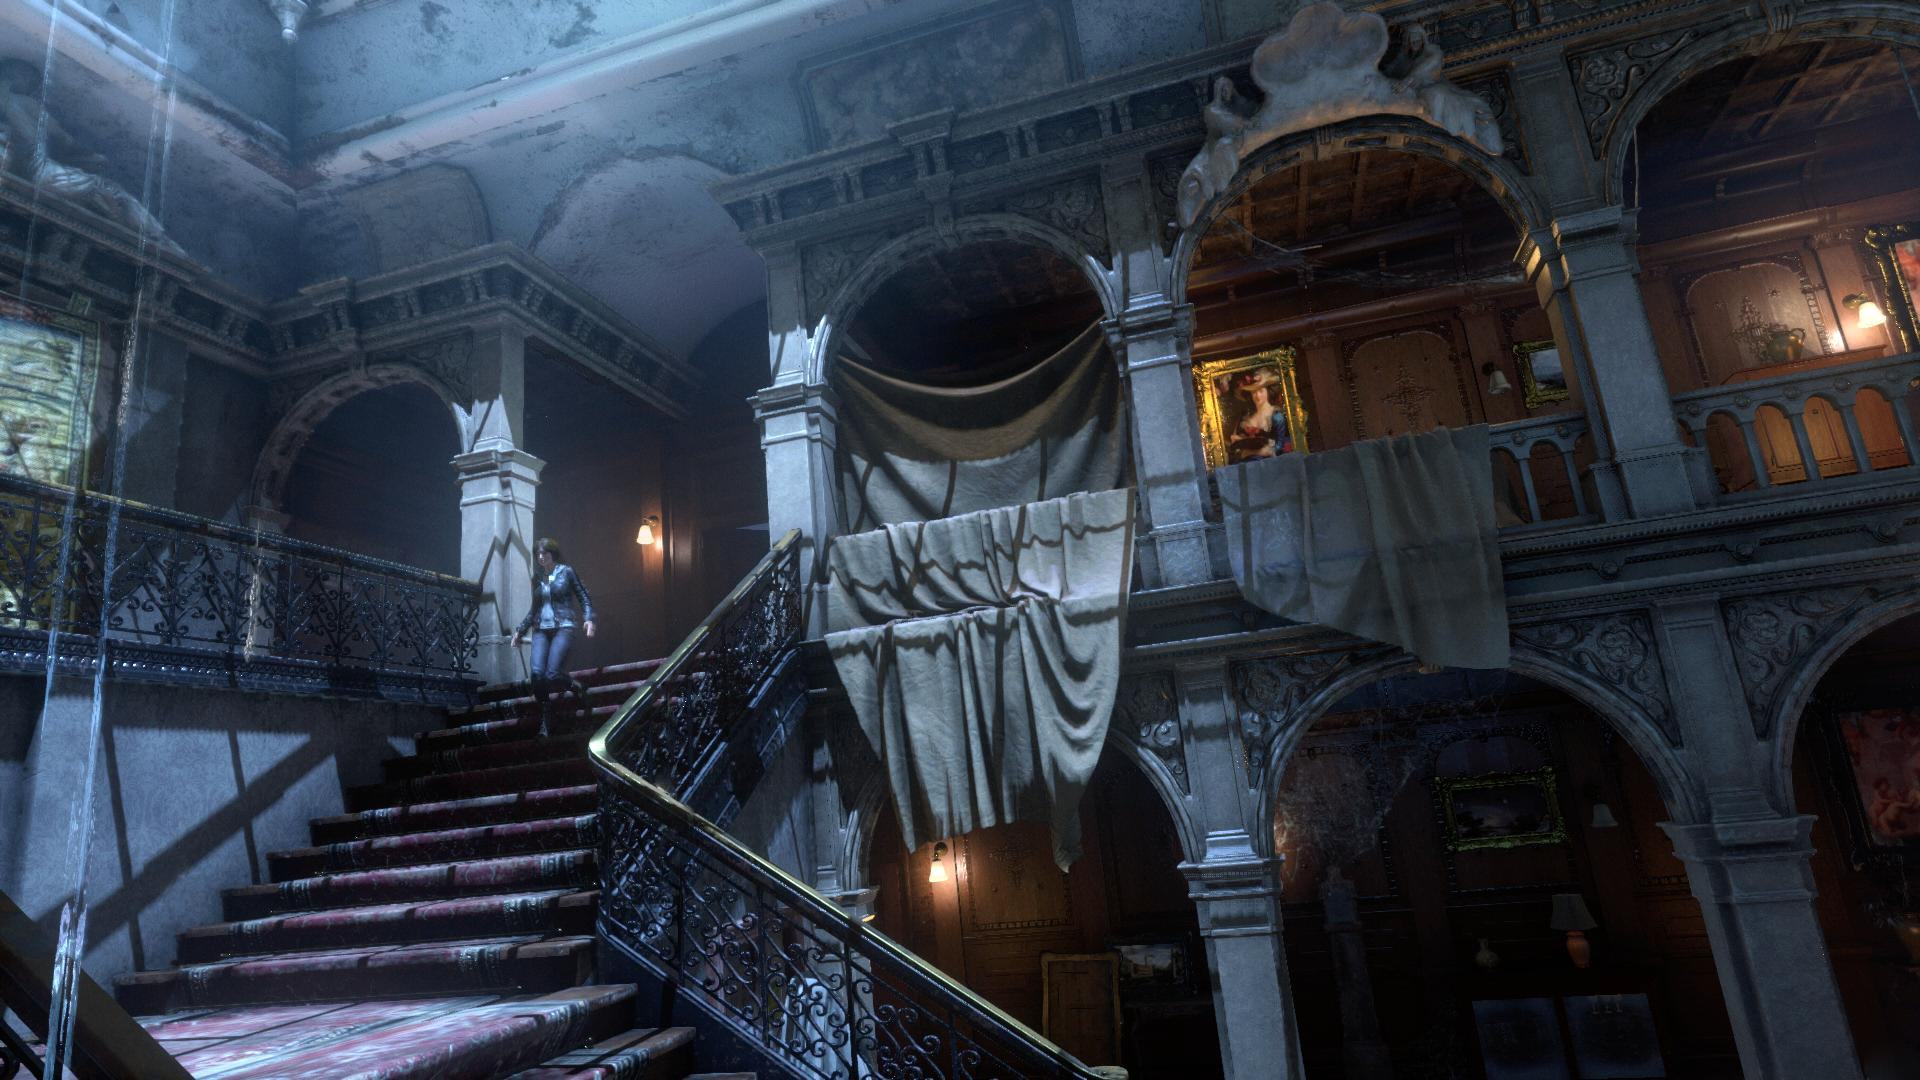 Rise Of The Tomb Raider Comes To Ps4 October 11 With Co Op And